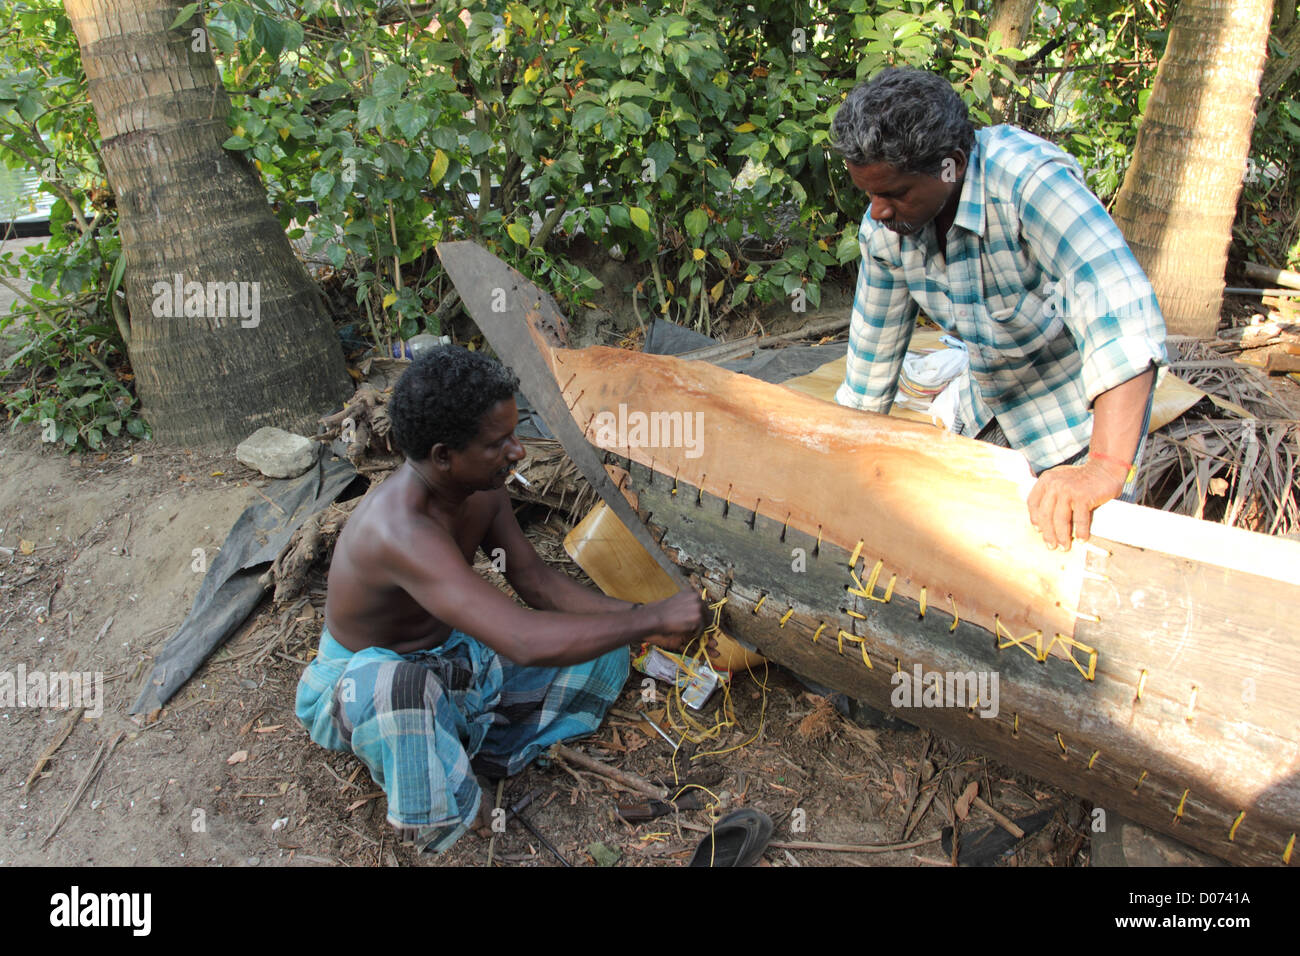 Man working on the process of building a boat. - Stock Image